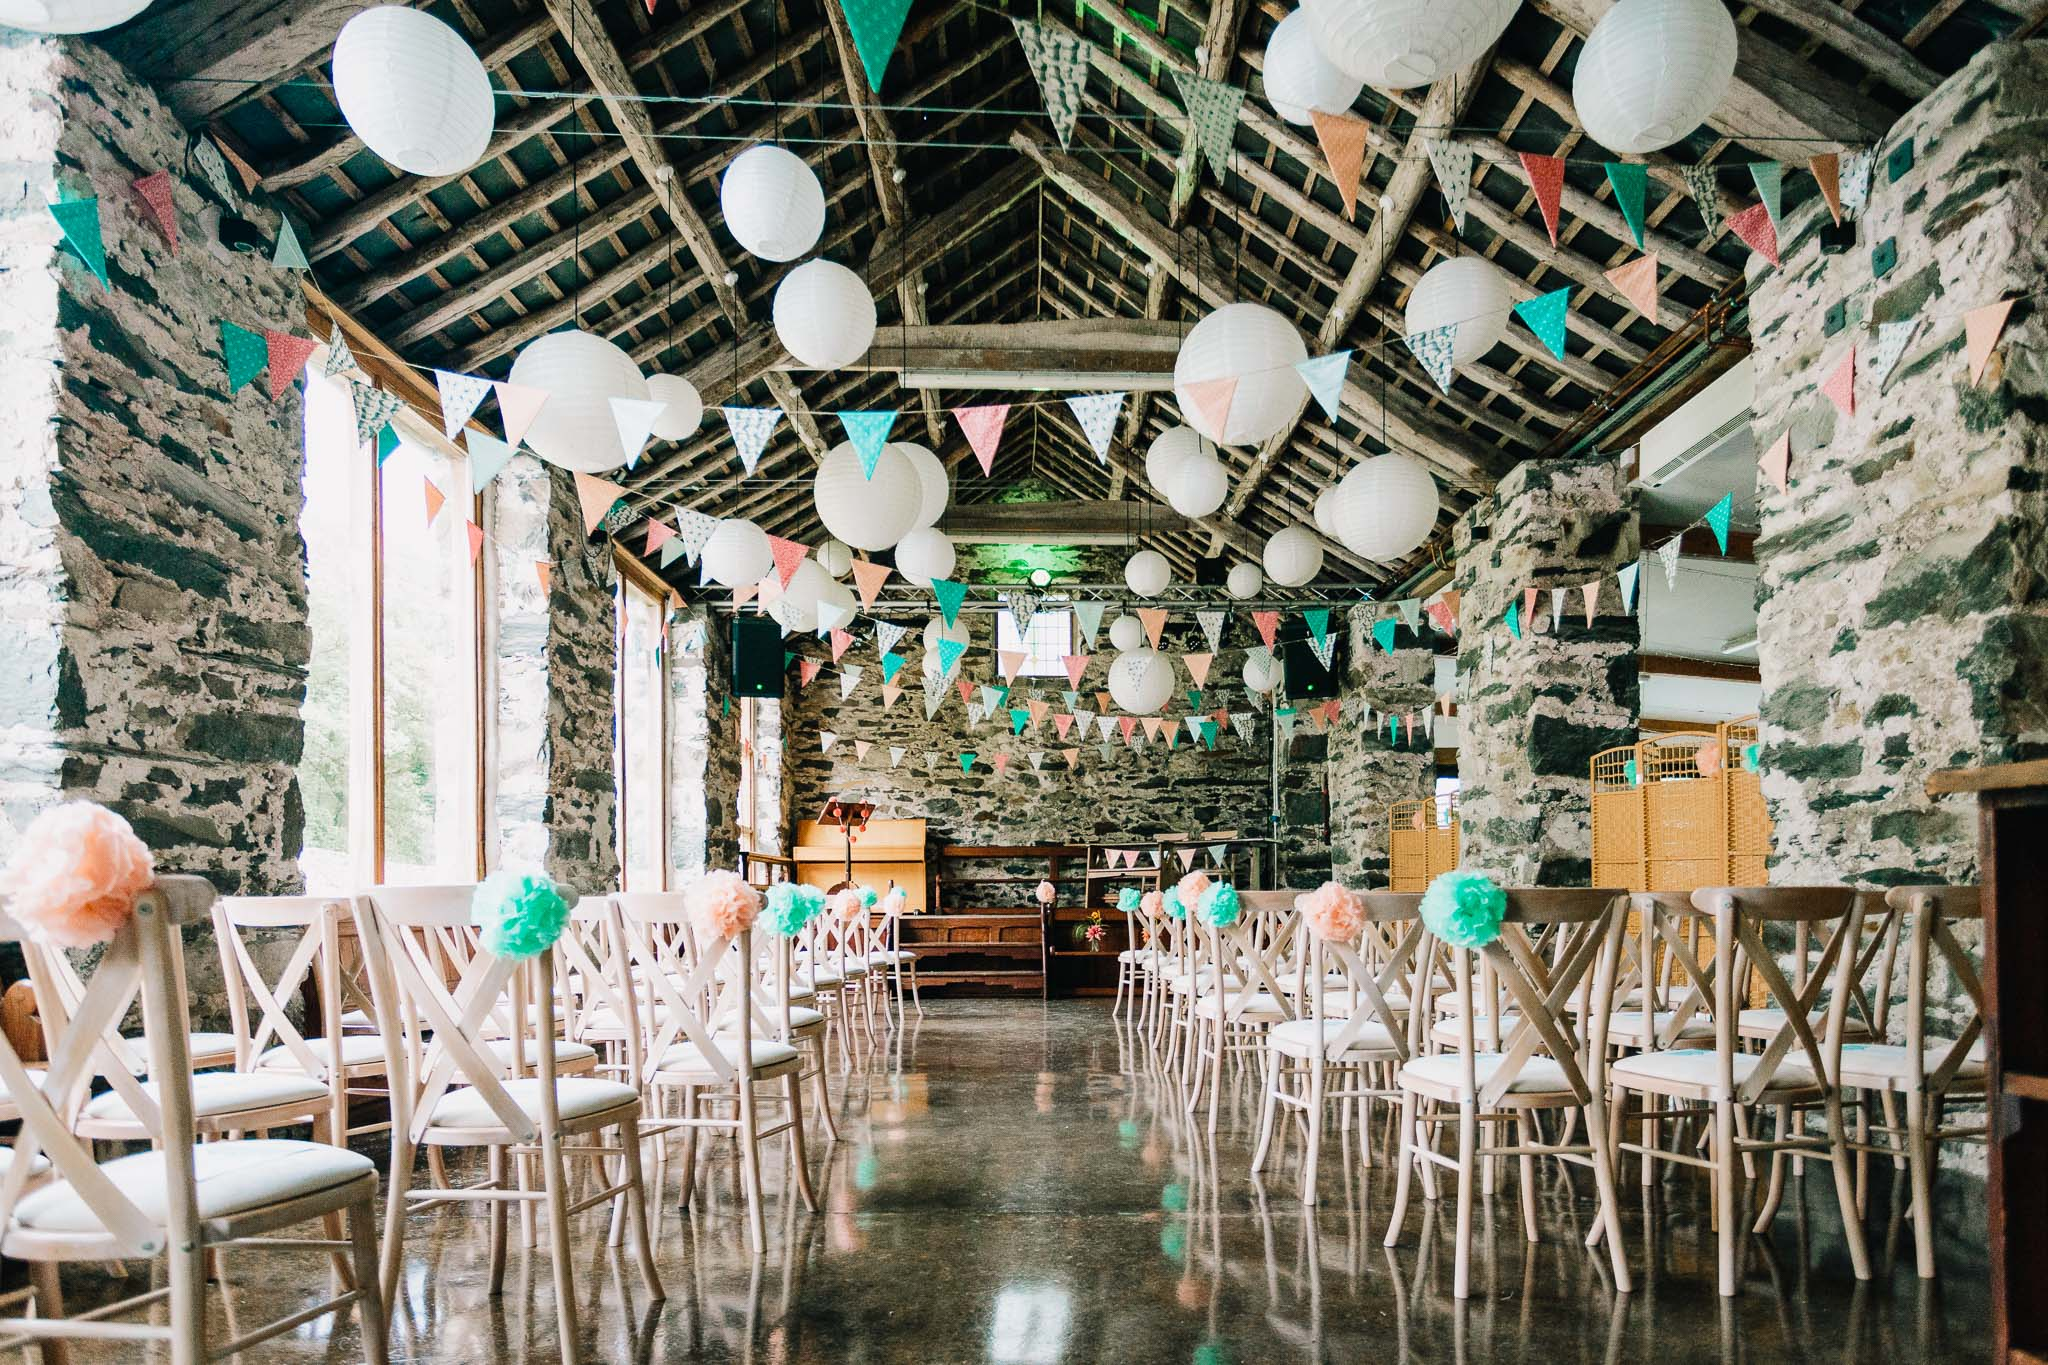 LLYN GWYNANT STONE BARN DECORATED IN PASTEL BLUE AND PINK FOR A WEDDING